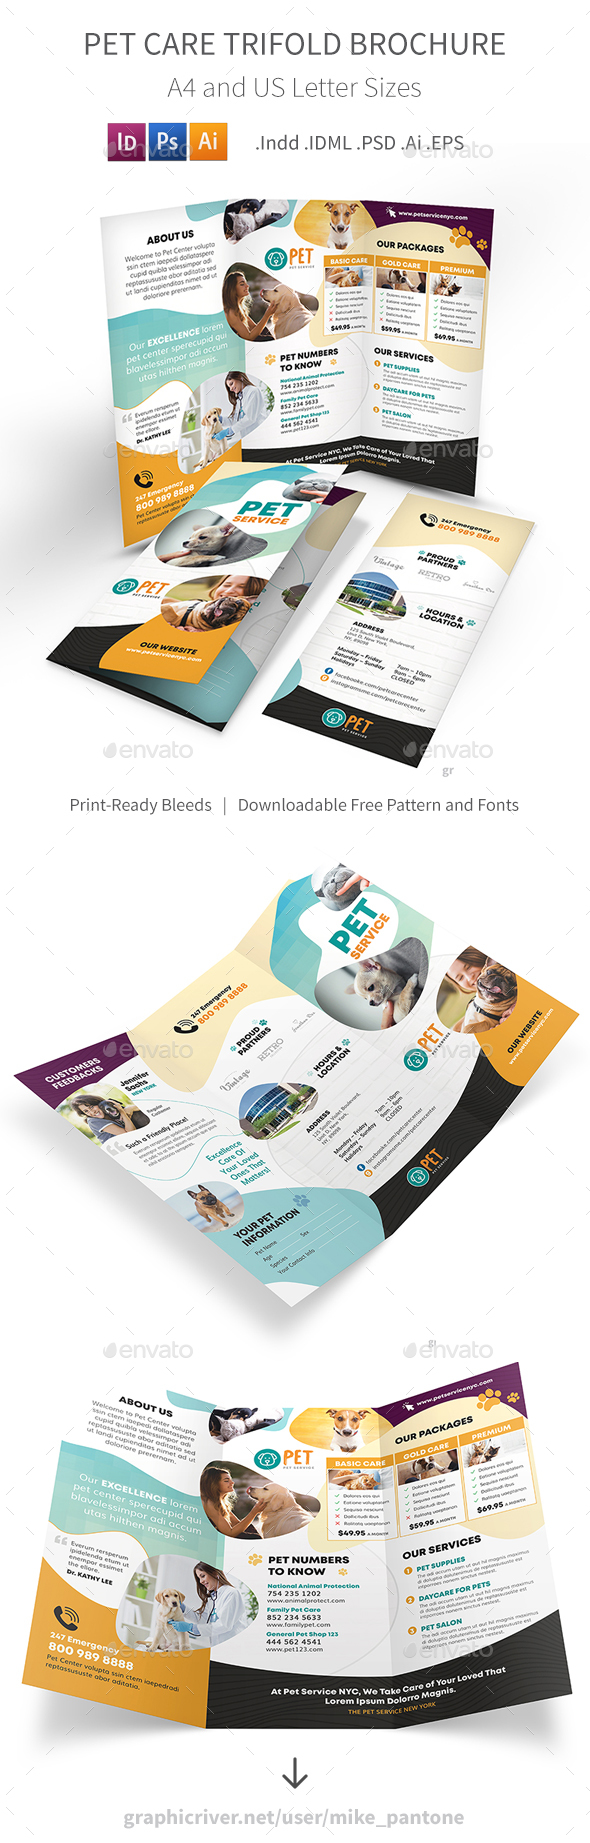 Pet Care Trifold Brochure 7 - Informational Brochures